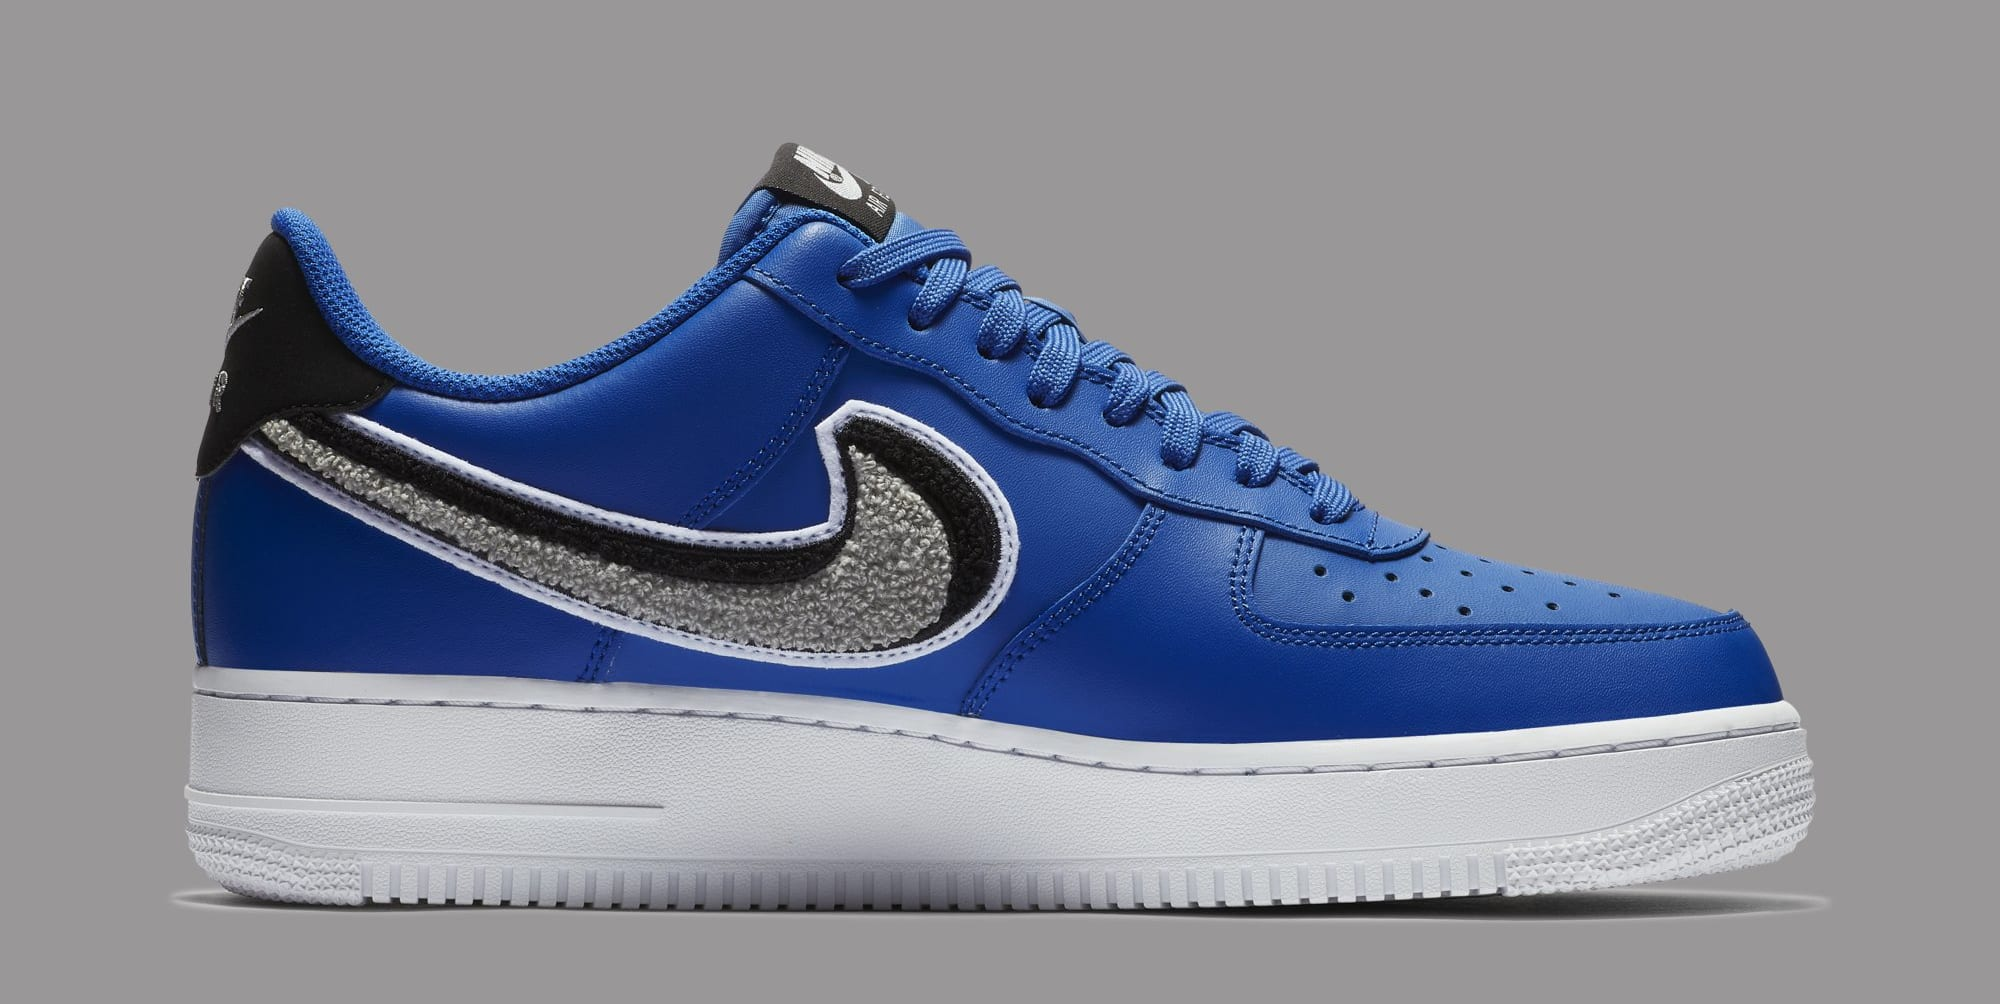 Nike Air Force 1 Low 3D Swoosh 823511-409 (Medial)